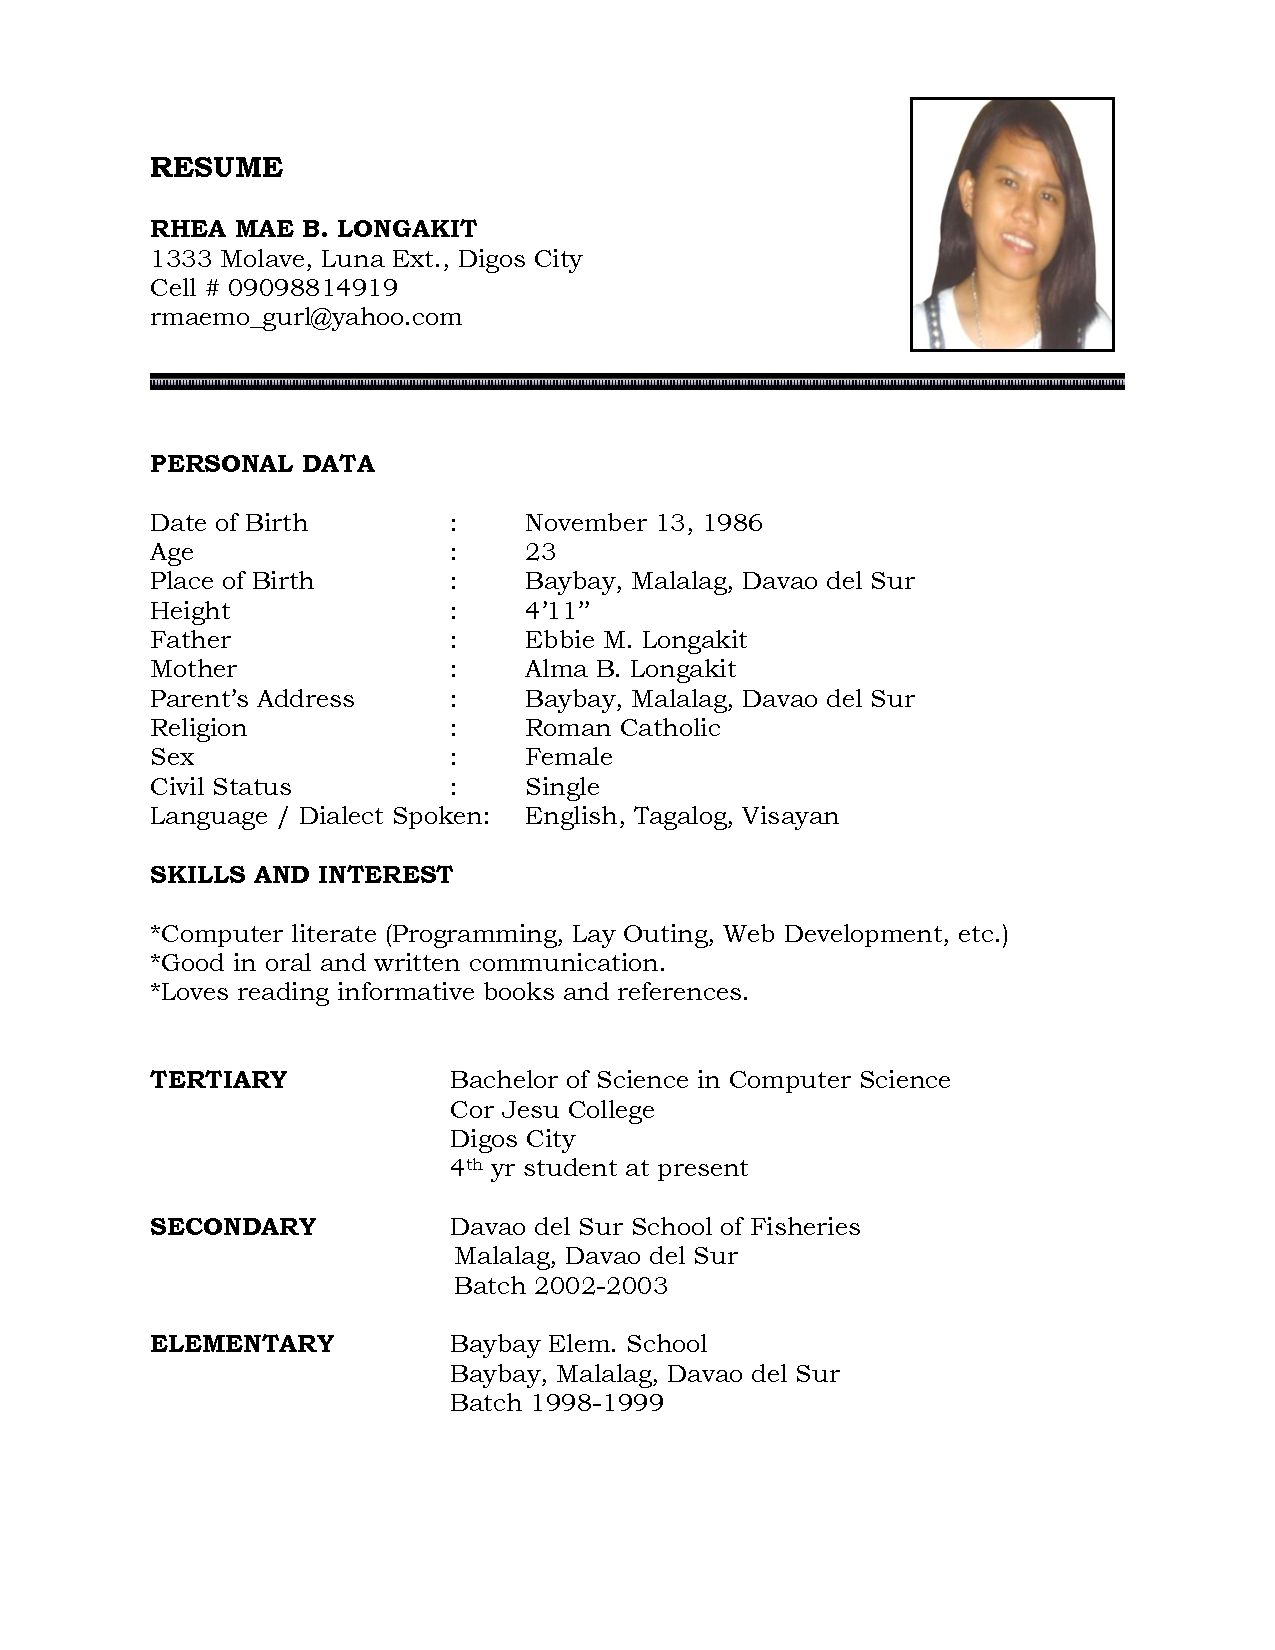 Career Resume Resume Sample Simple De9e2a60f The Simple Format Of Resume